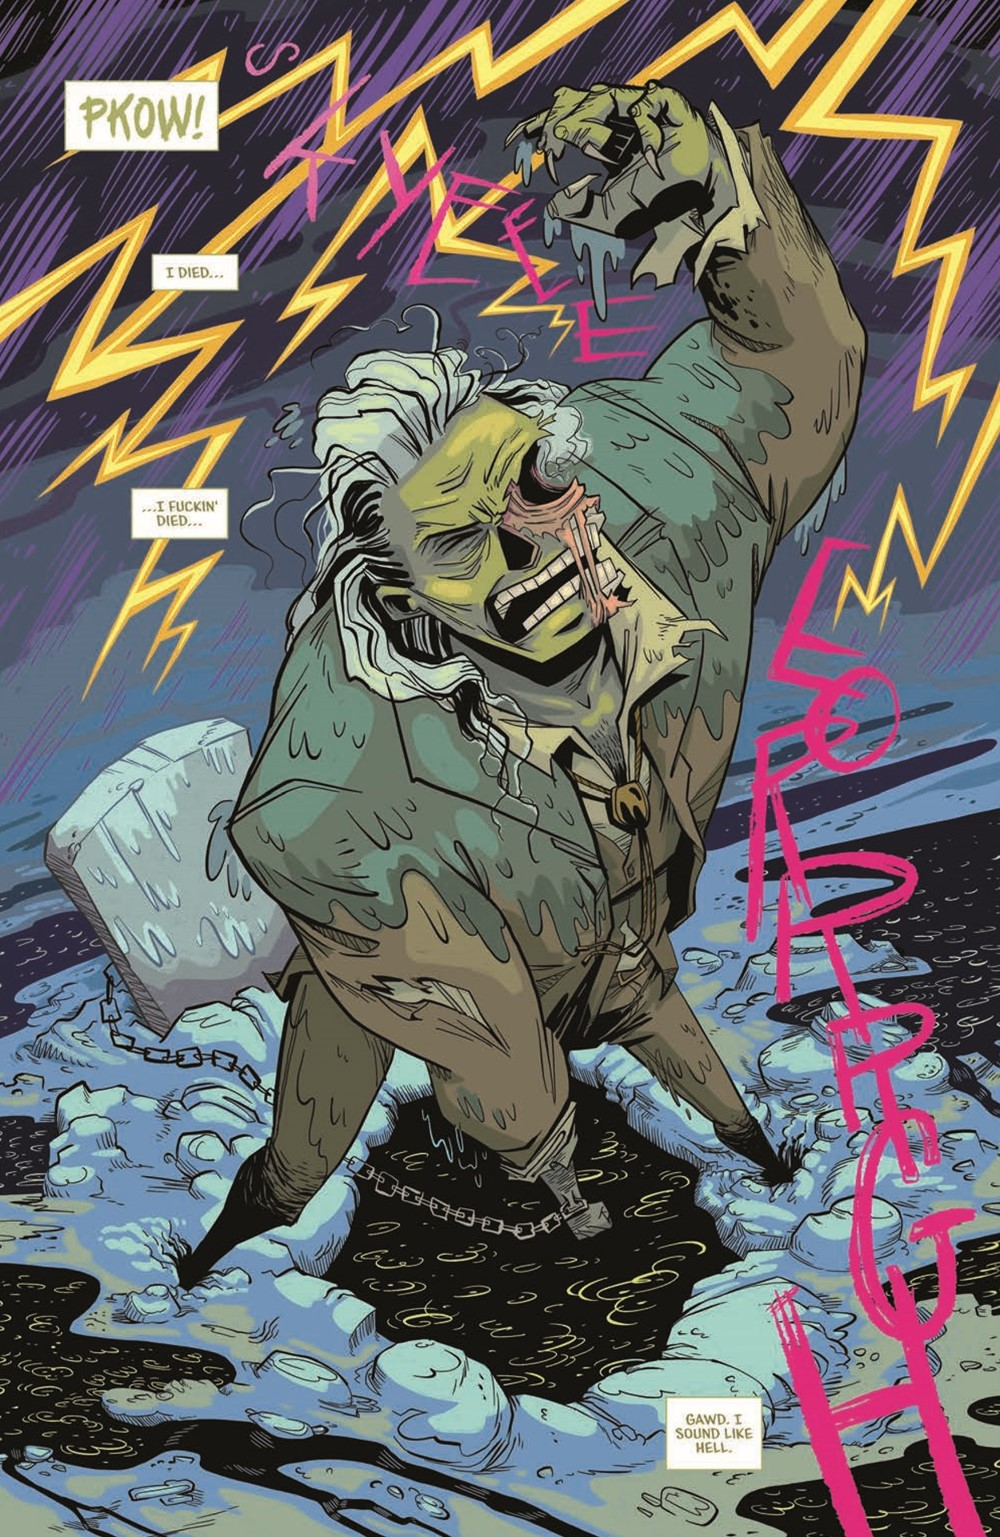 CttG01-pr-4 ComicList Previews: CHAINED TO THE GRAVE #1 (OF 5)